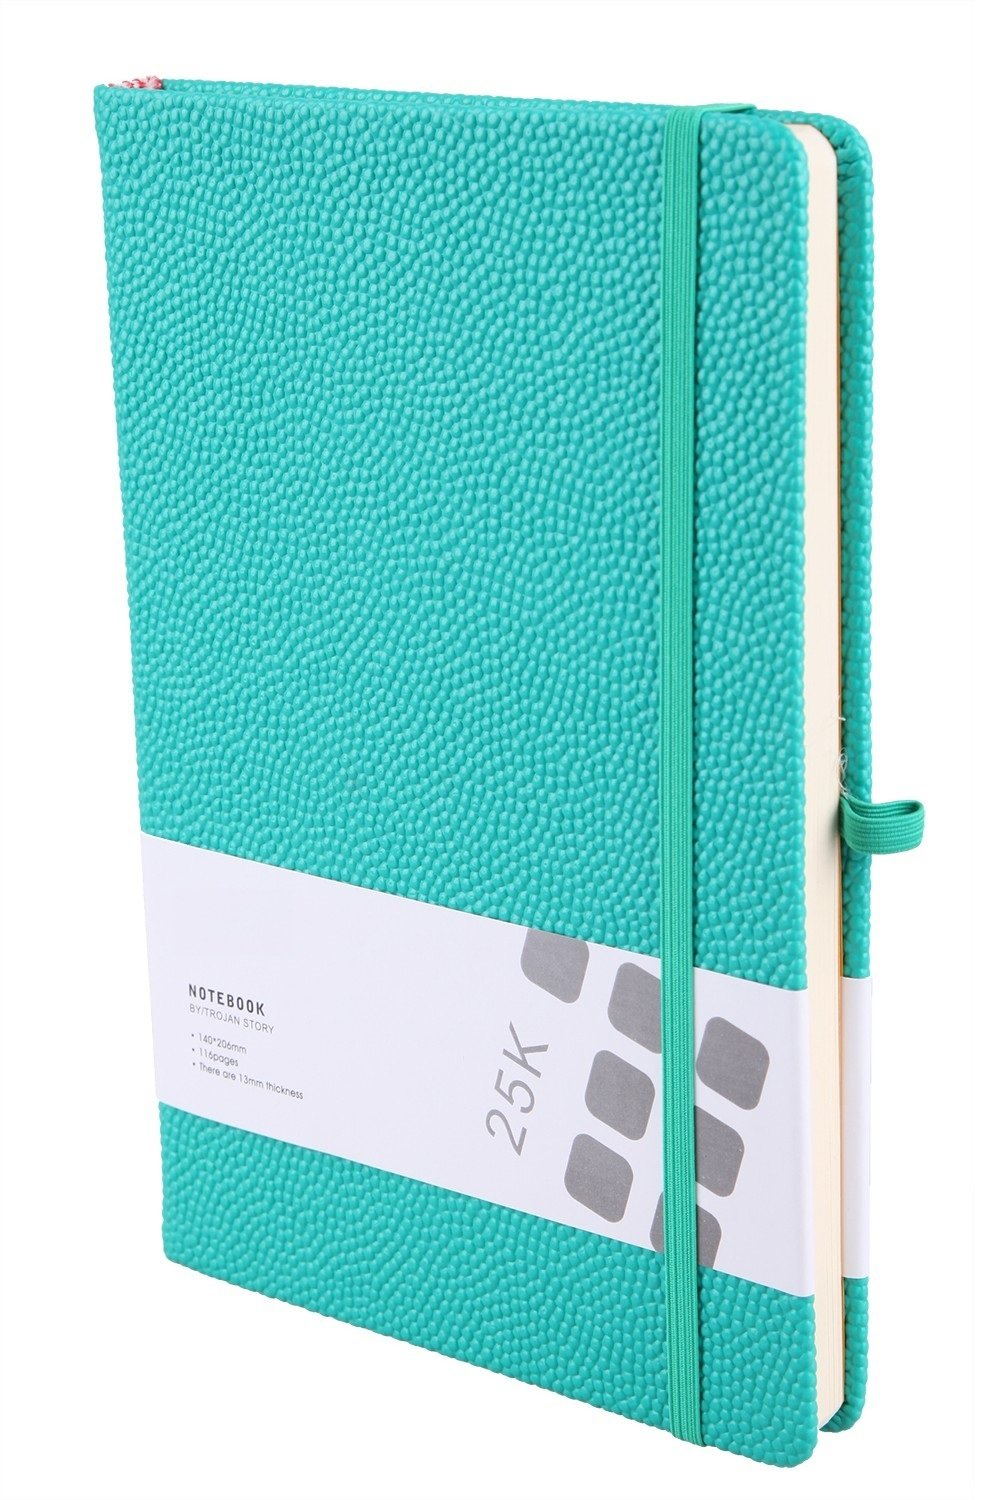 Cute Hardcover Journal Notebook Medium PU Leather Ruled Diary to Write in for Girl Women Men Gift, Elastic Closure, Pen Holder, Page Dividers, 5.6 x 8.3 Inch Back to School Supplies (Emerald Green)